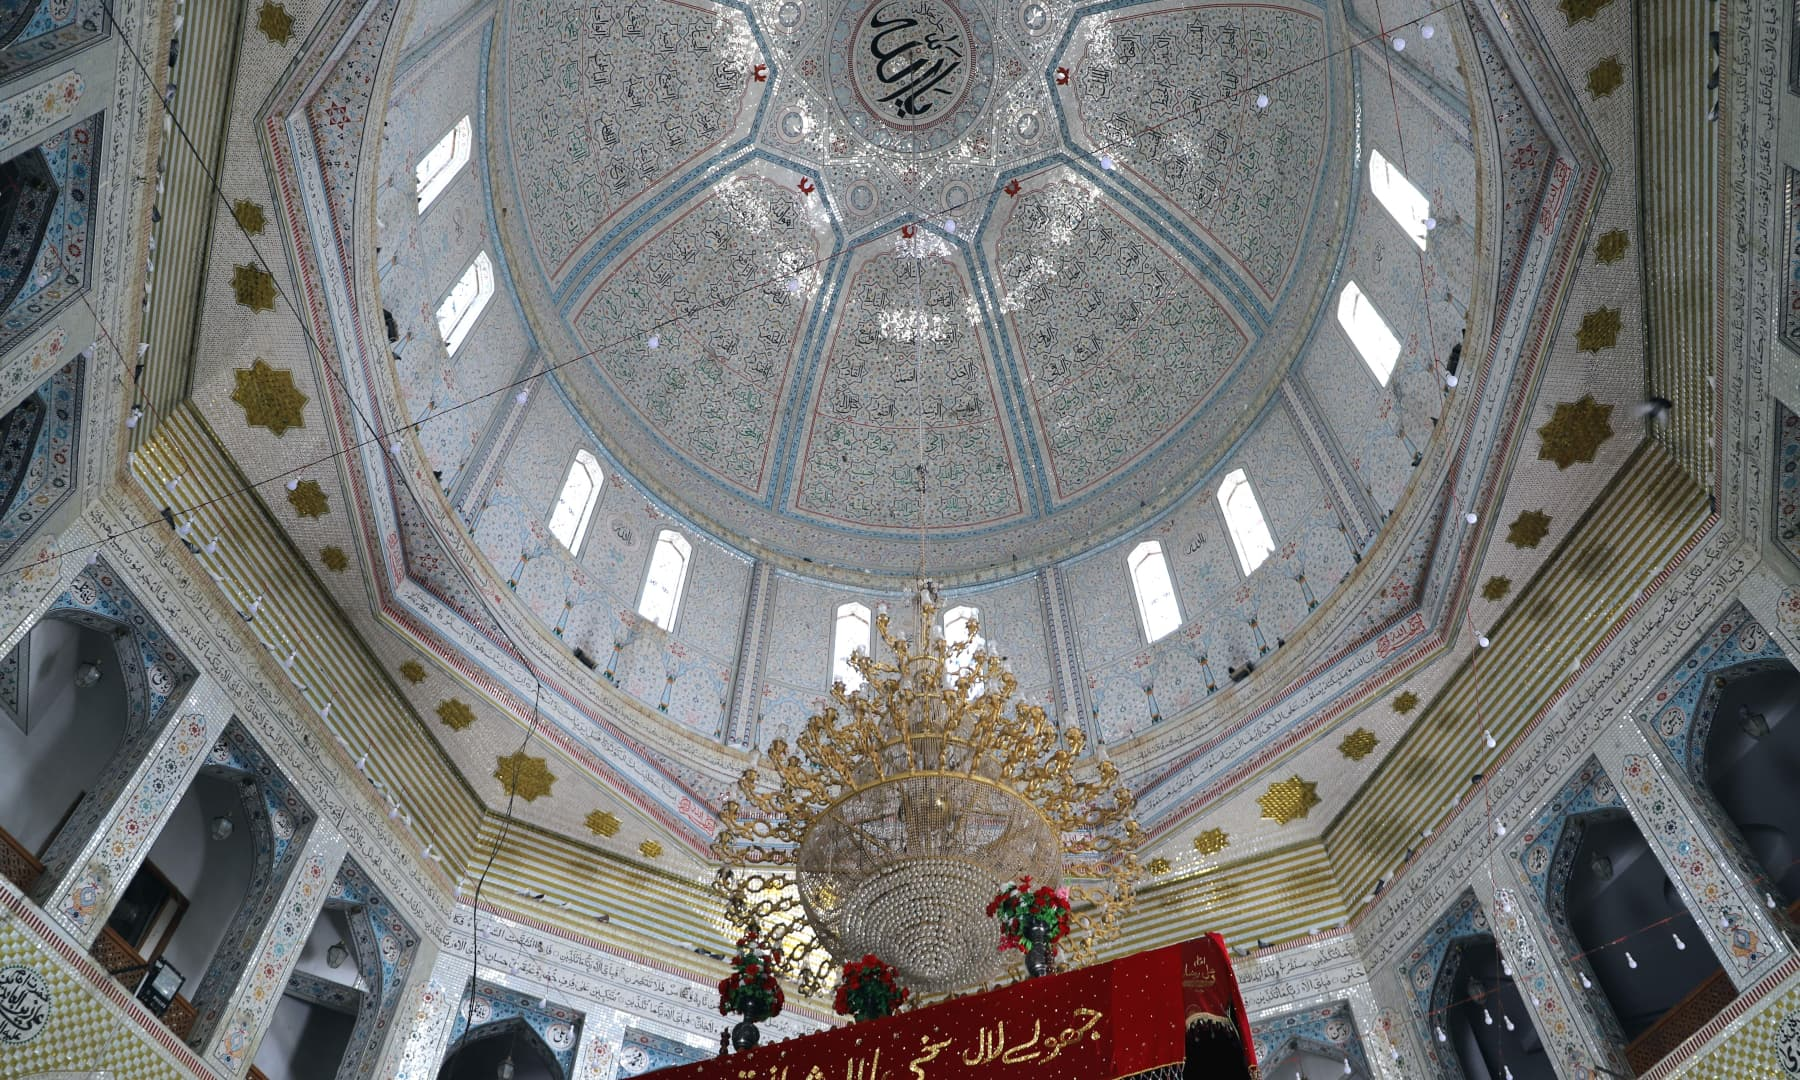 An inside view of the dome at the shrine in Sehwan.